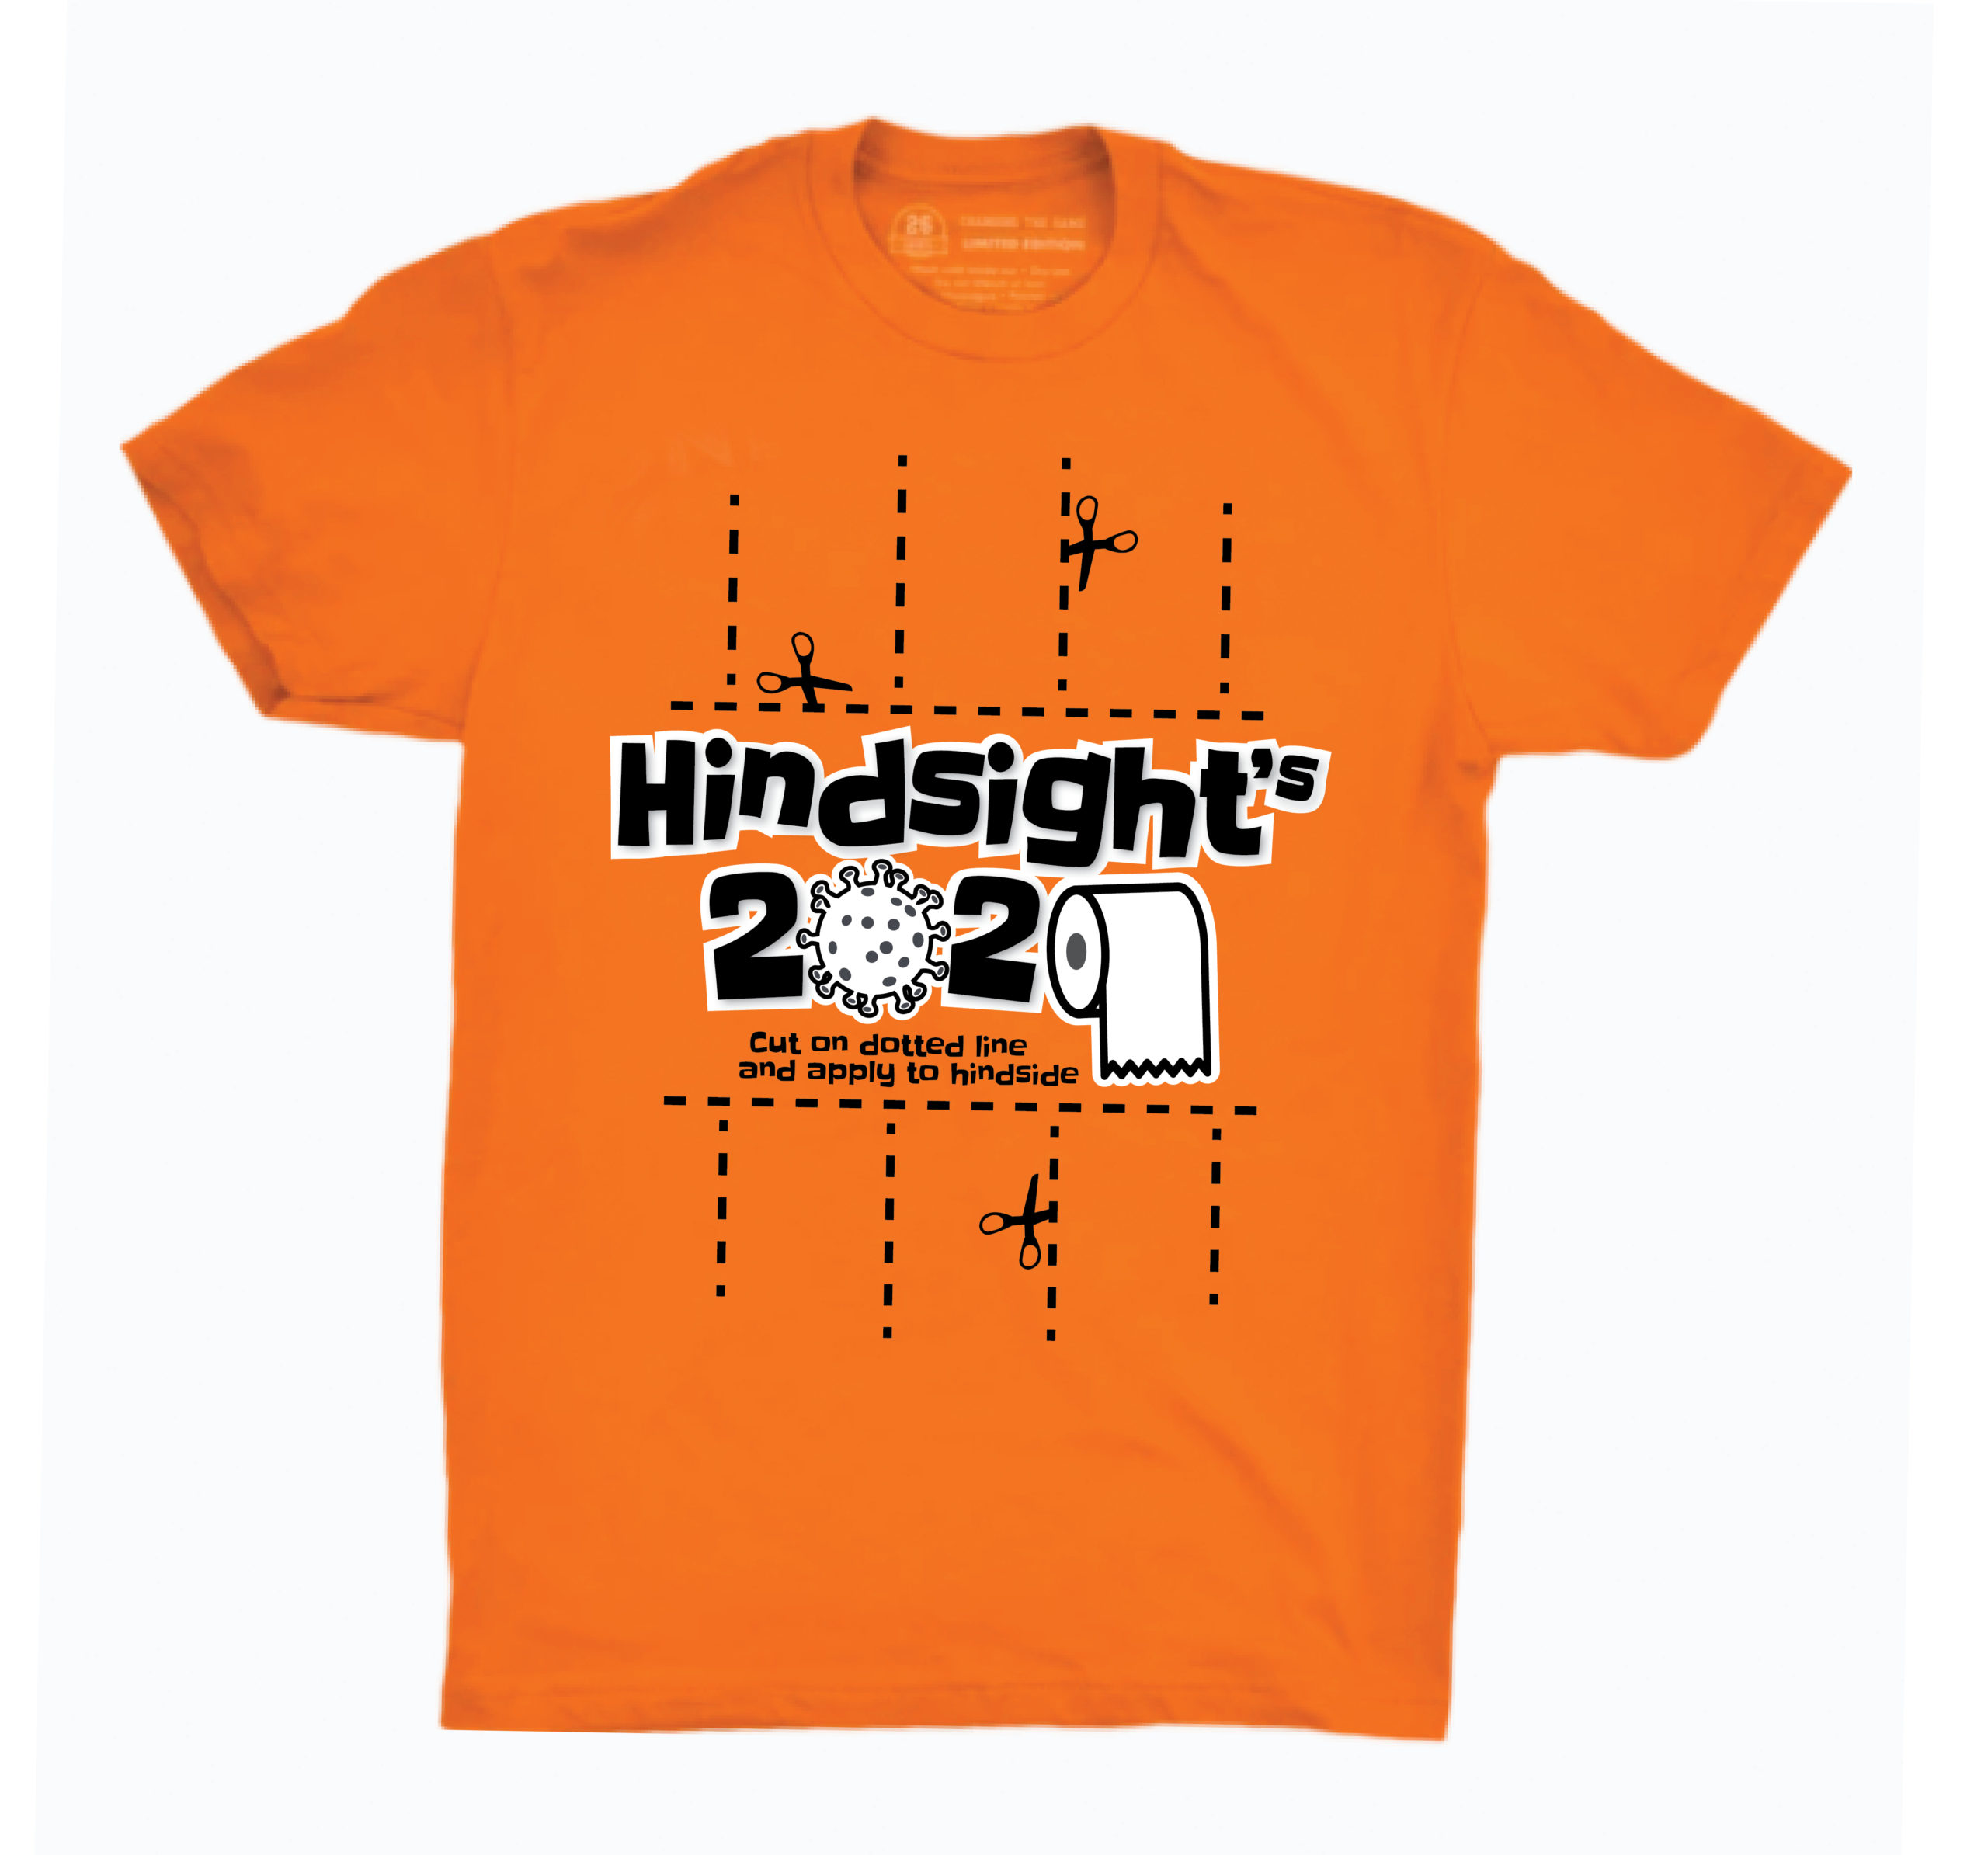 Orange shirt with Hindsight's 2020 graphic on front